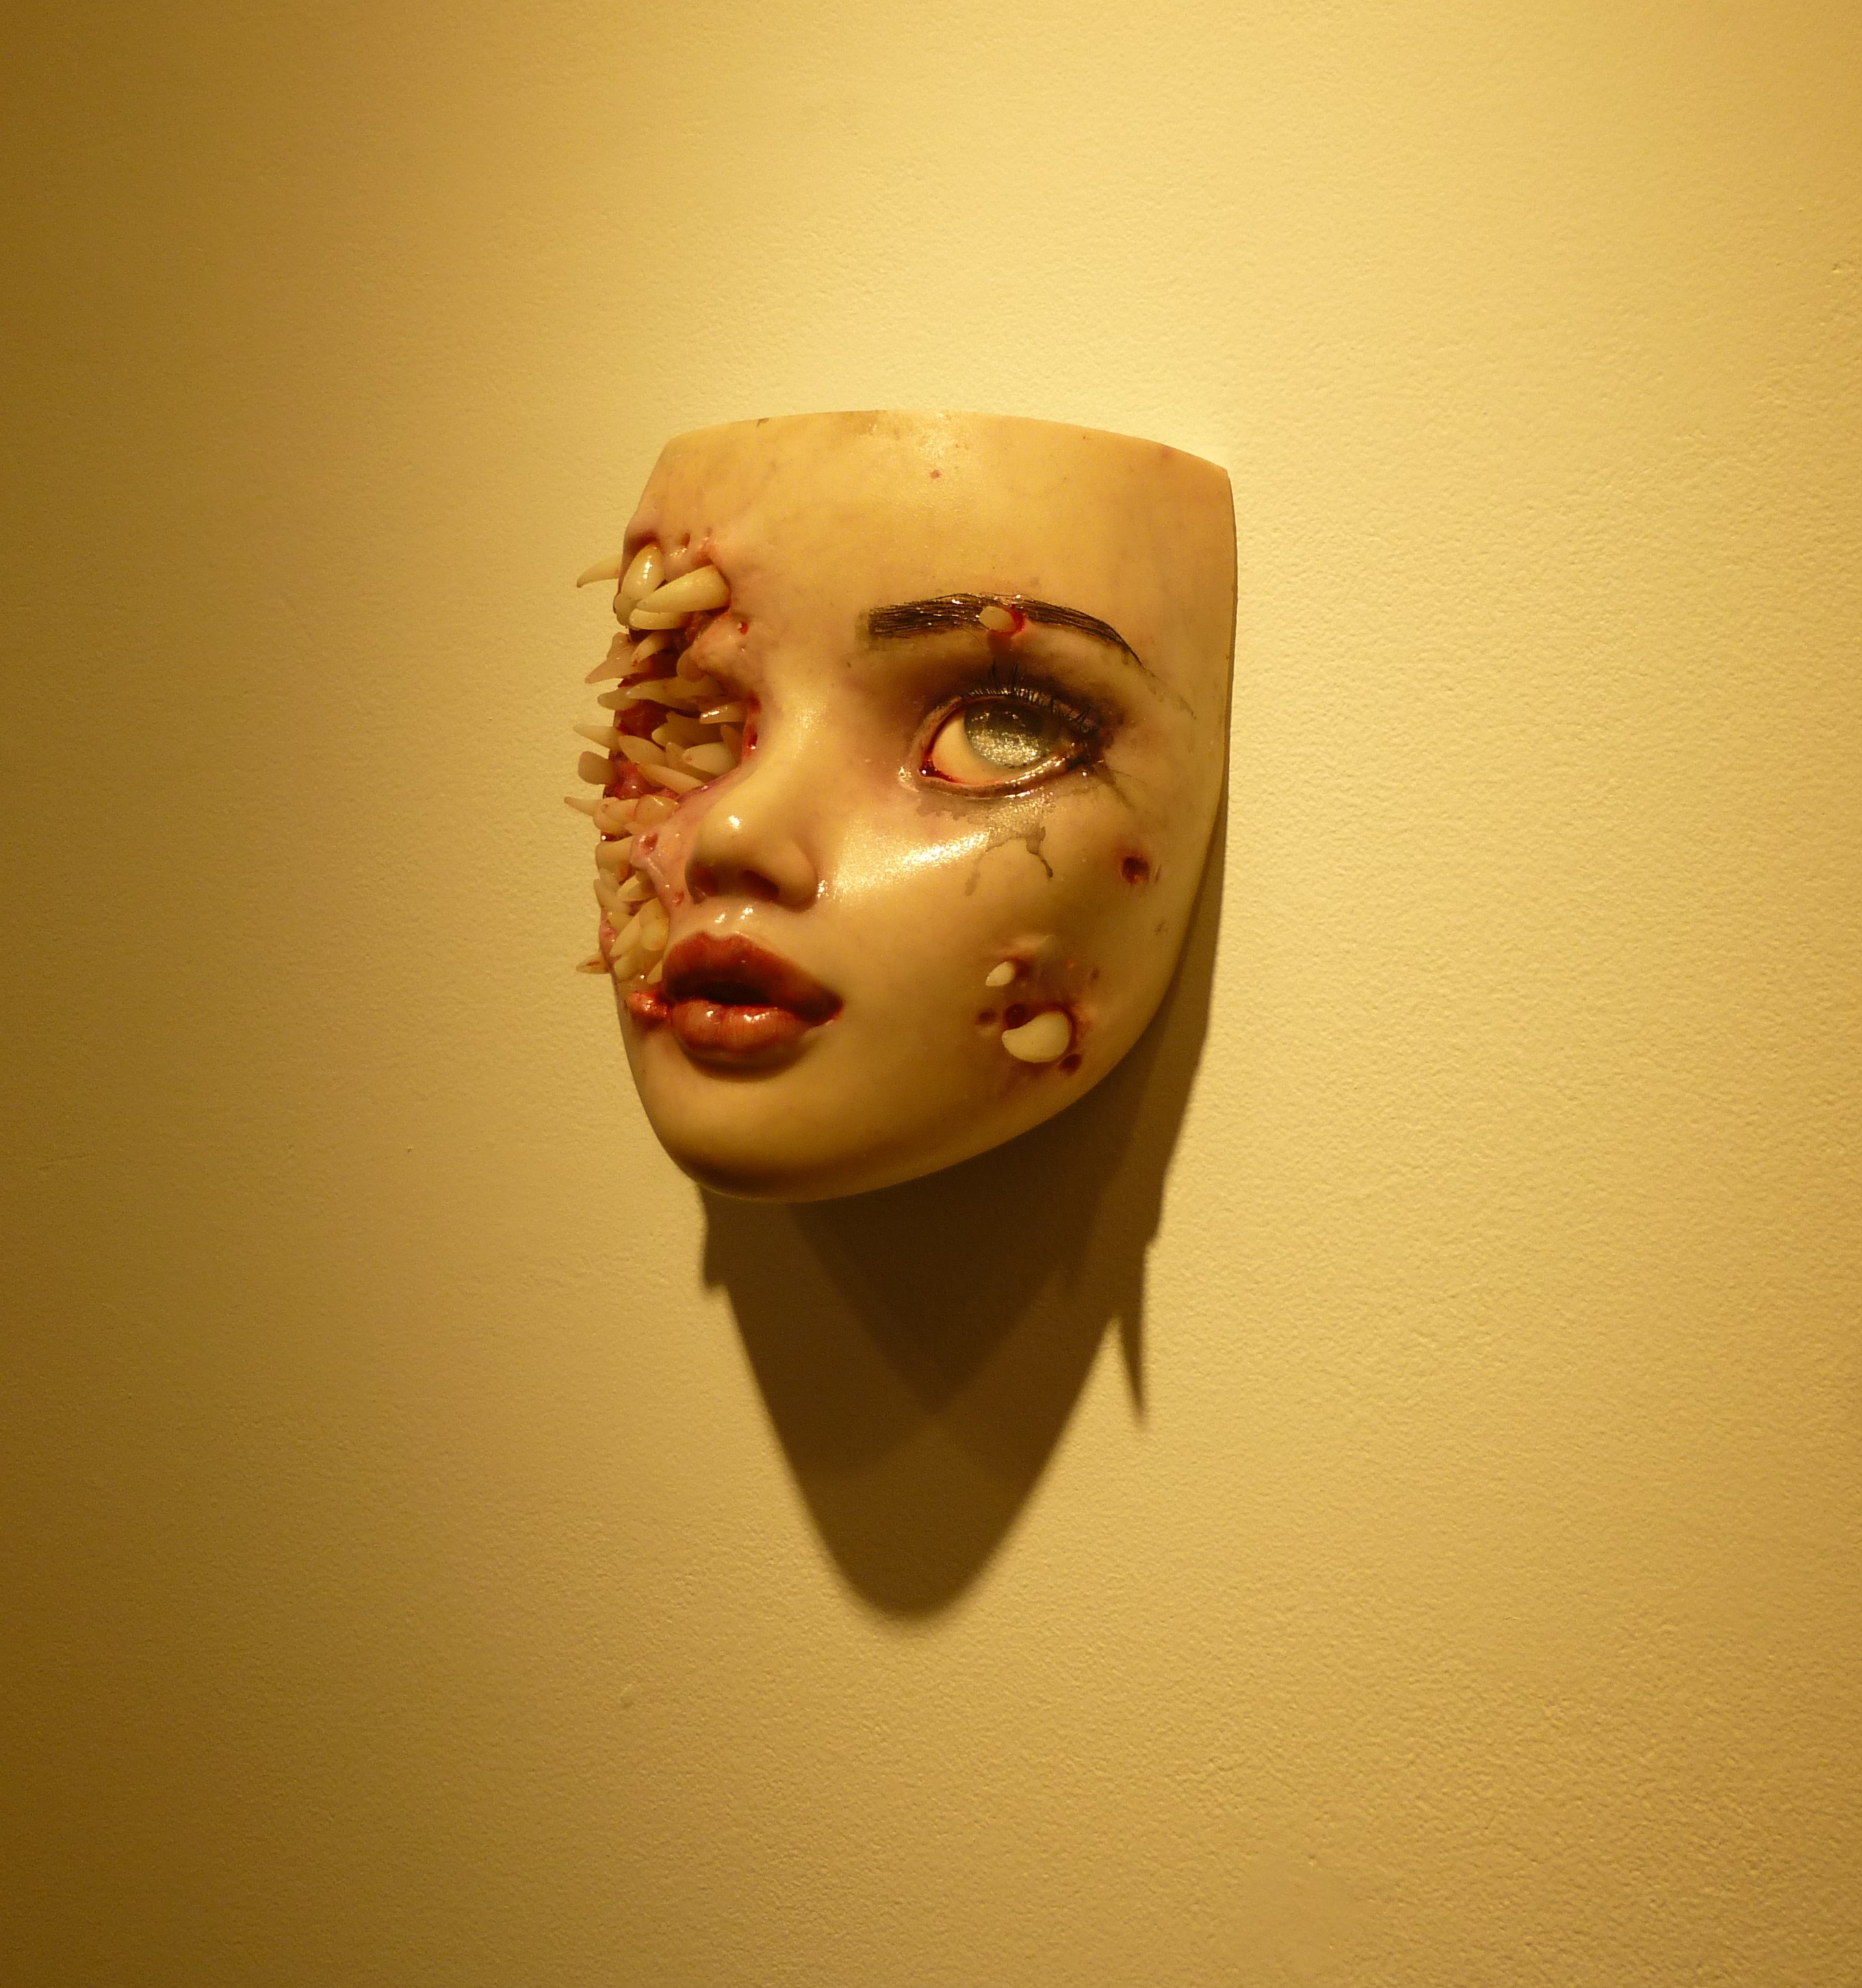 Colin Christian S Trypophobia At Stephen Romano Gallery The